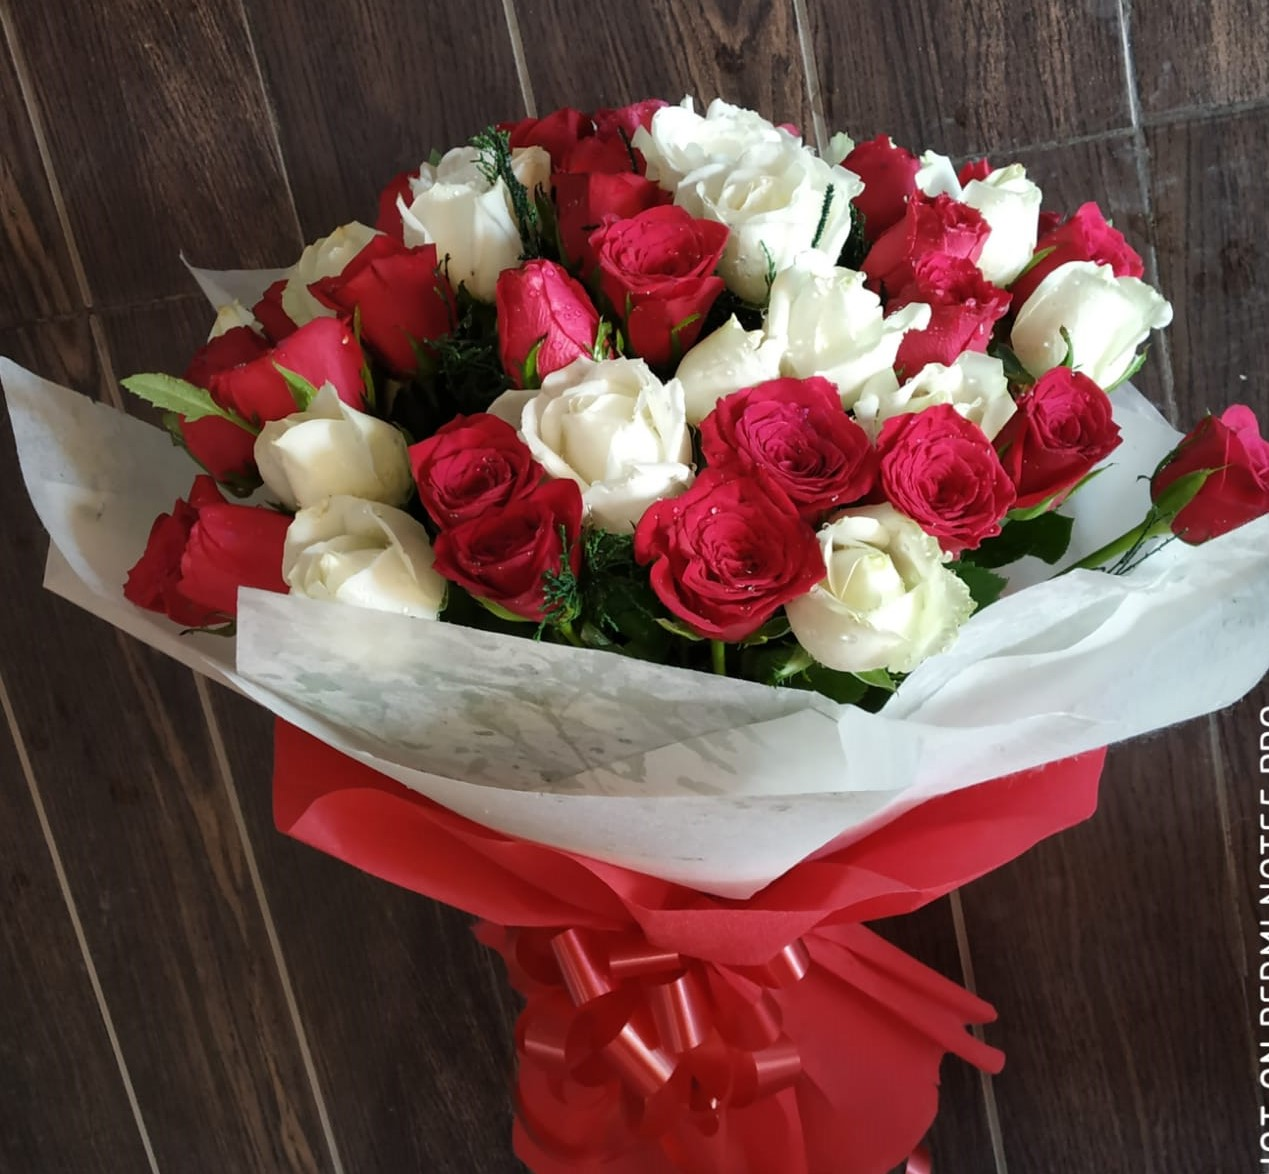 send flower Delhi University DelhiRed & White Roses in Duble Layer Packing